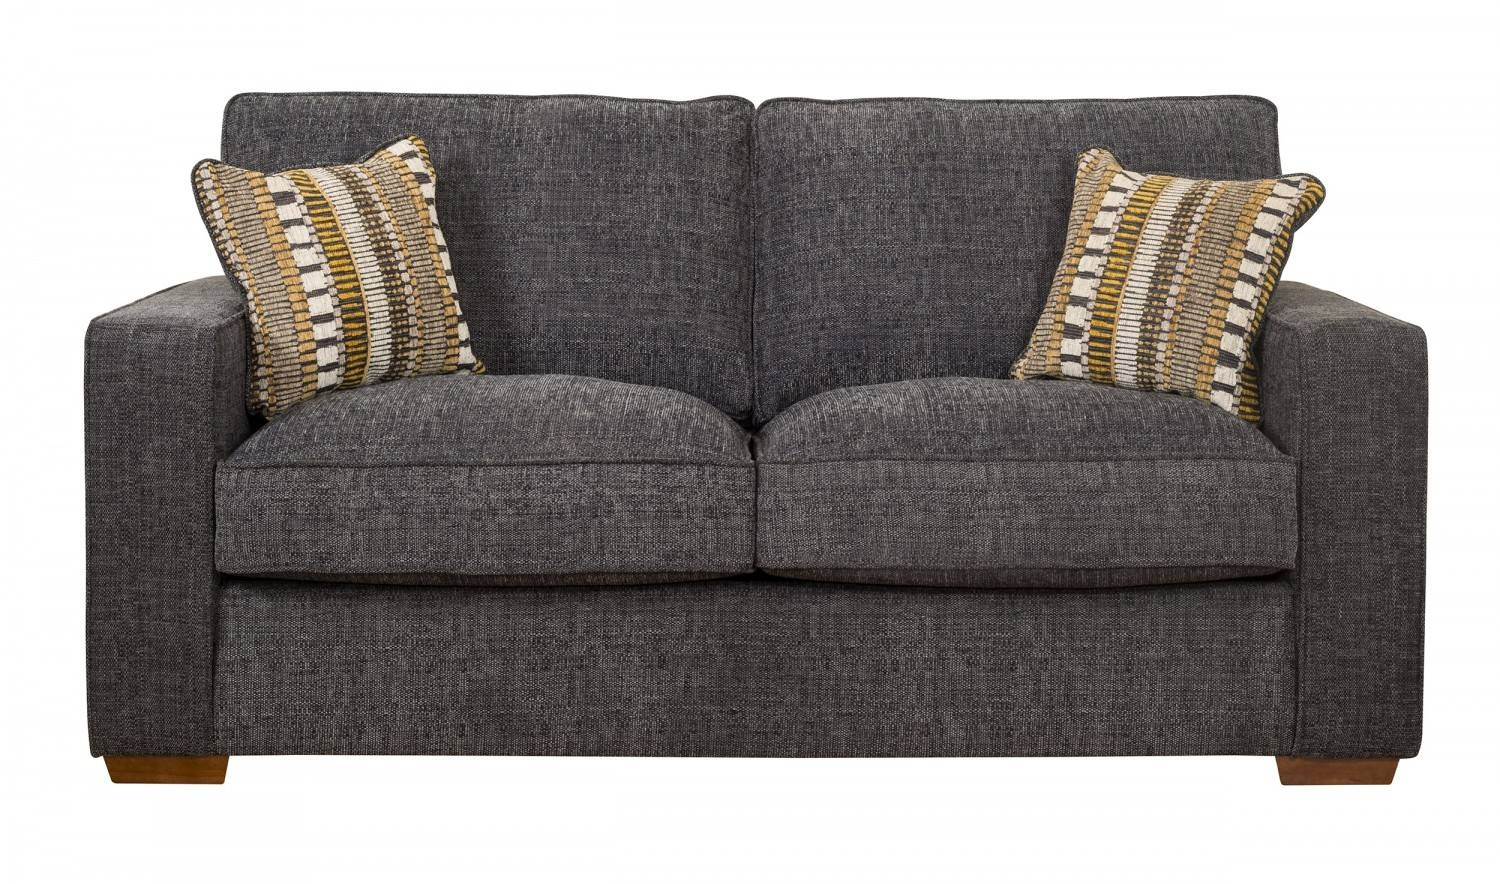 3 Seater Sofas & Settees | Fabric & Leather | Ahf in Canterbury Leather Sofas (Image 1 of 30)